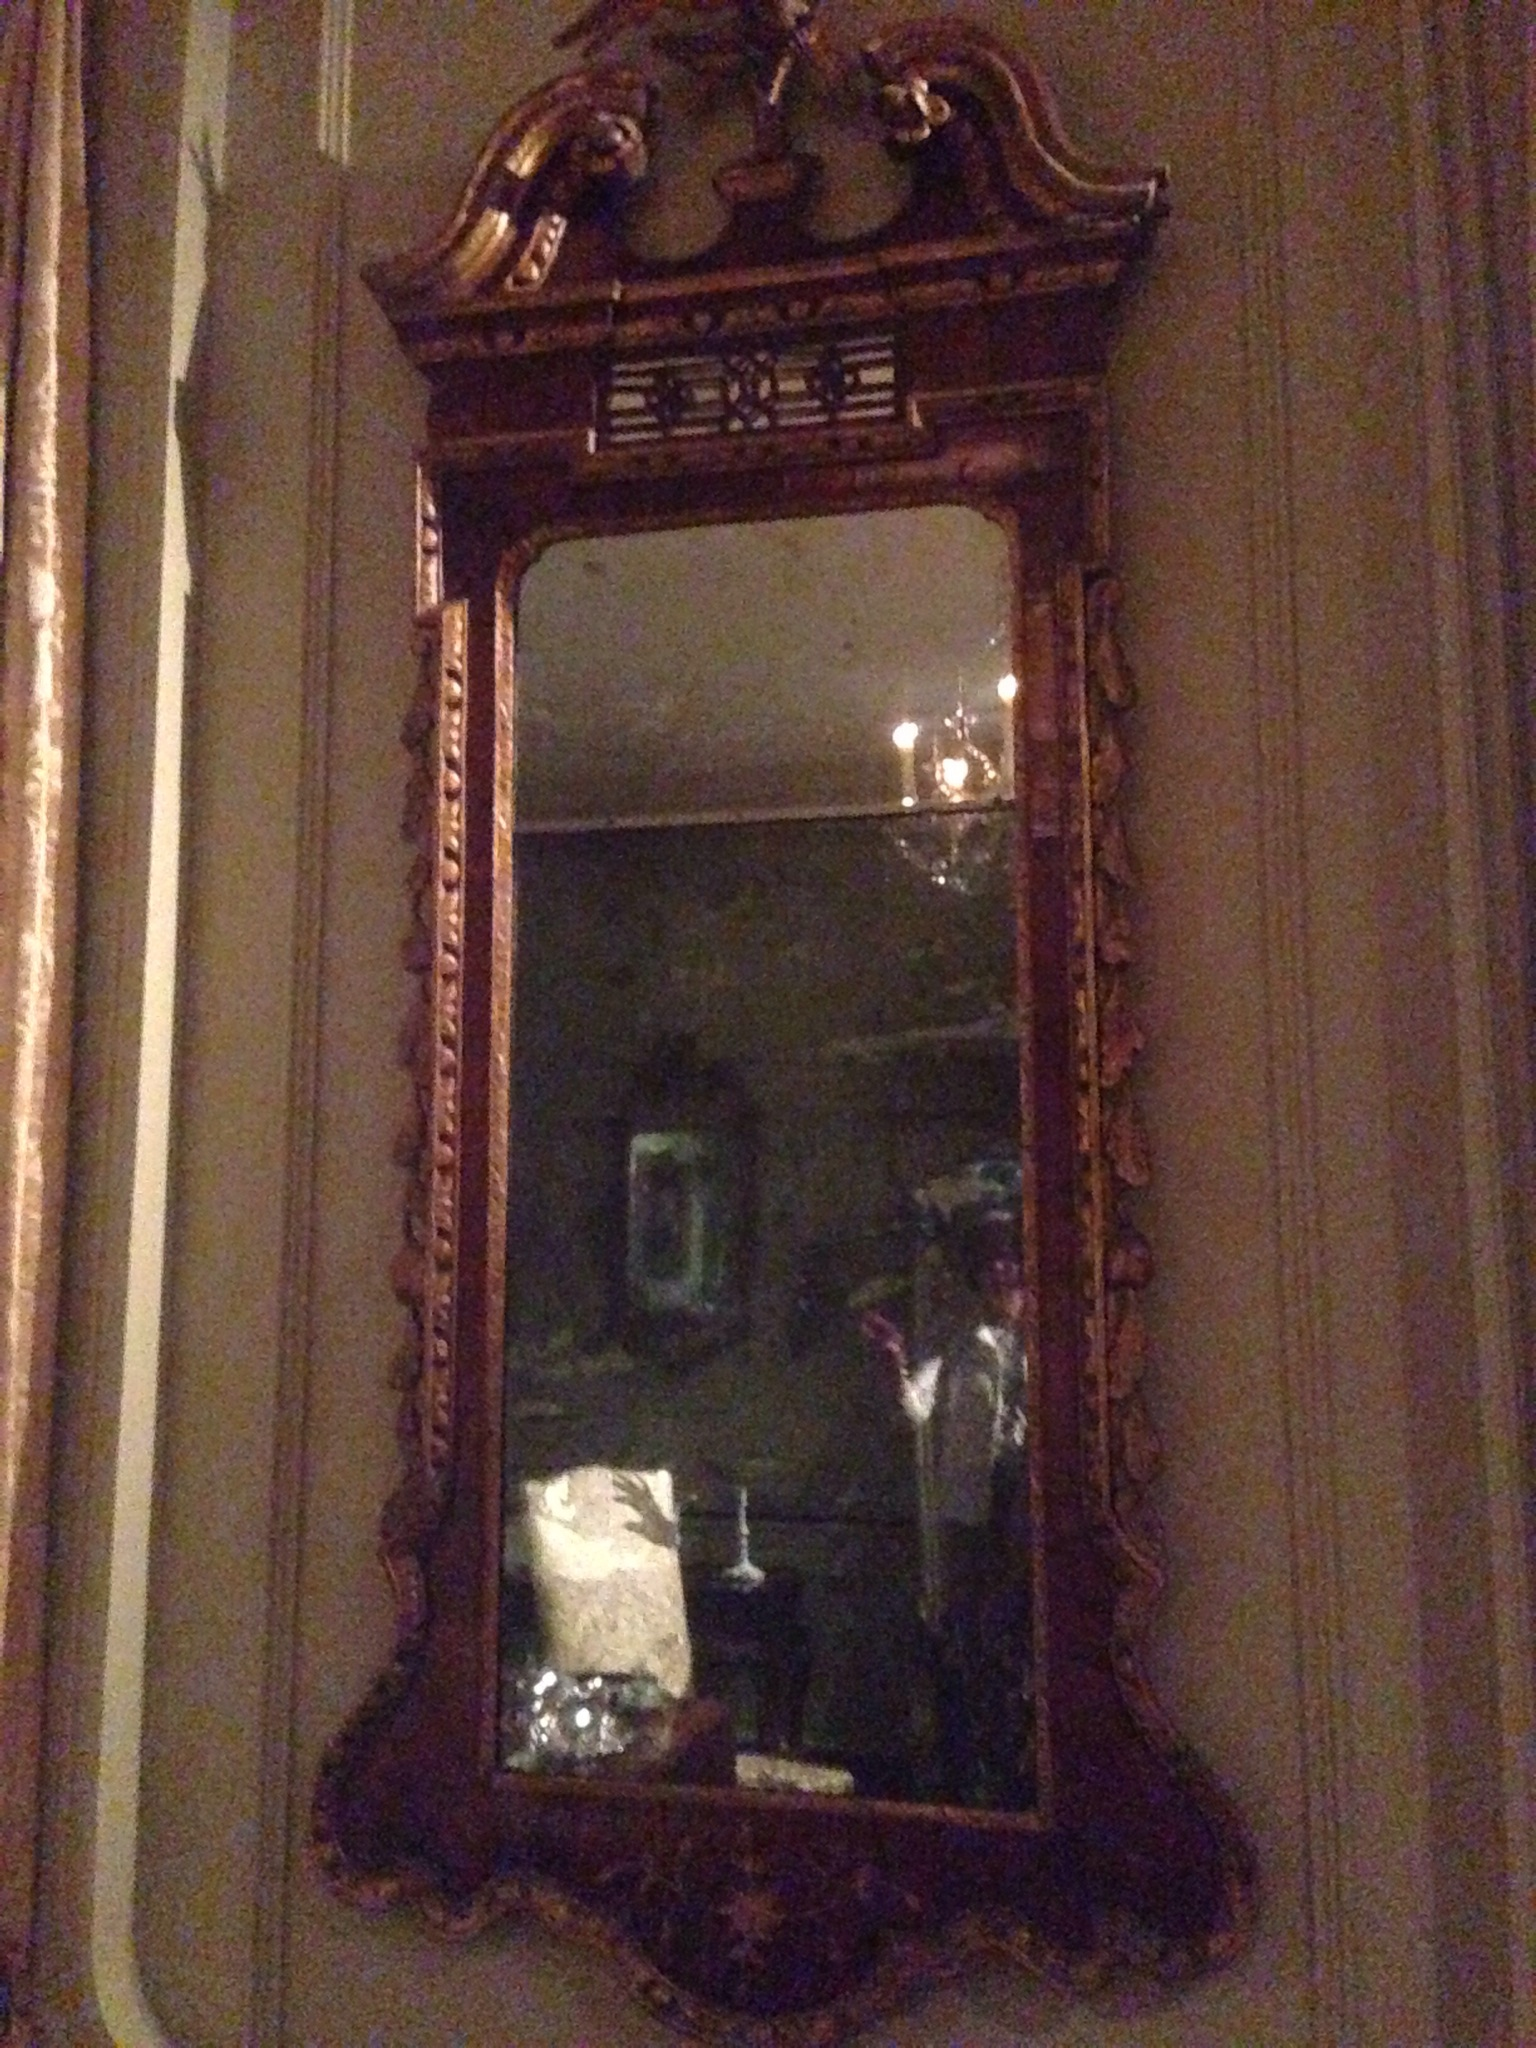 This looking glass was owned by Martha Washington